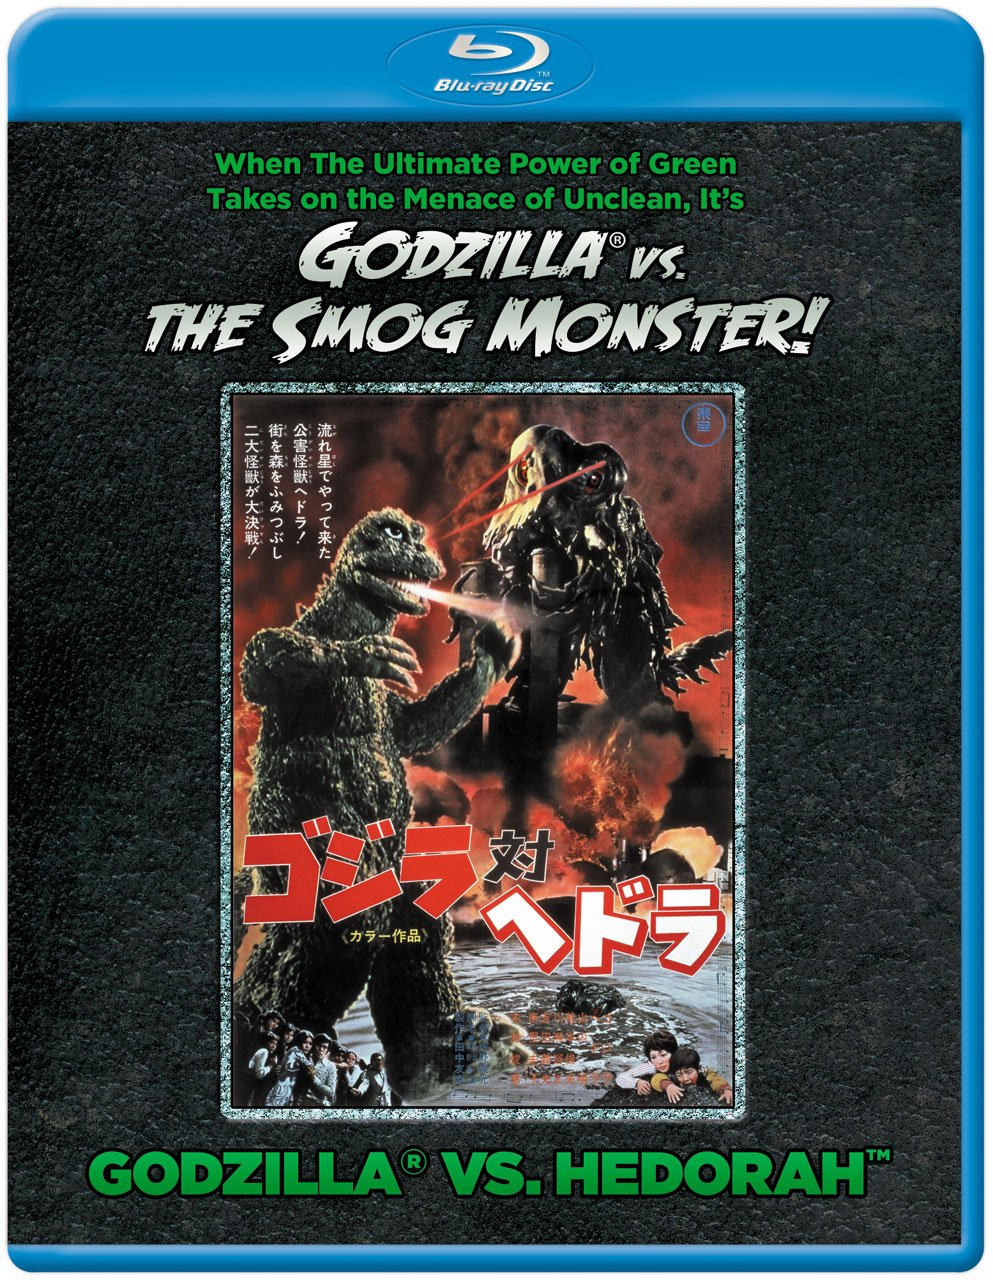 That's a 40 minute look at the real thing! So this is a great Blu Ray in my  book!